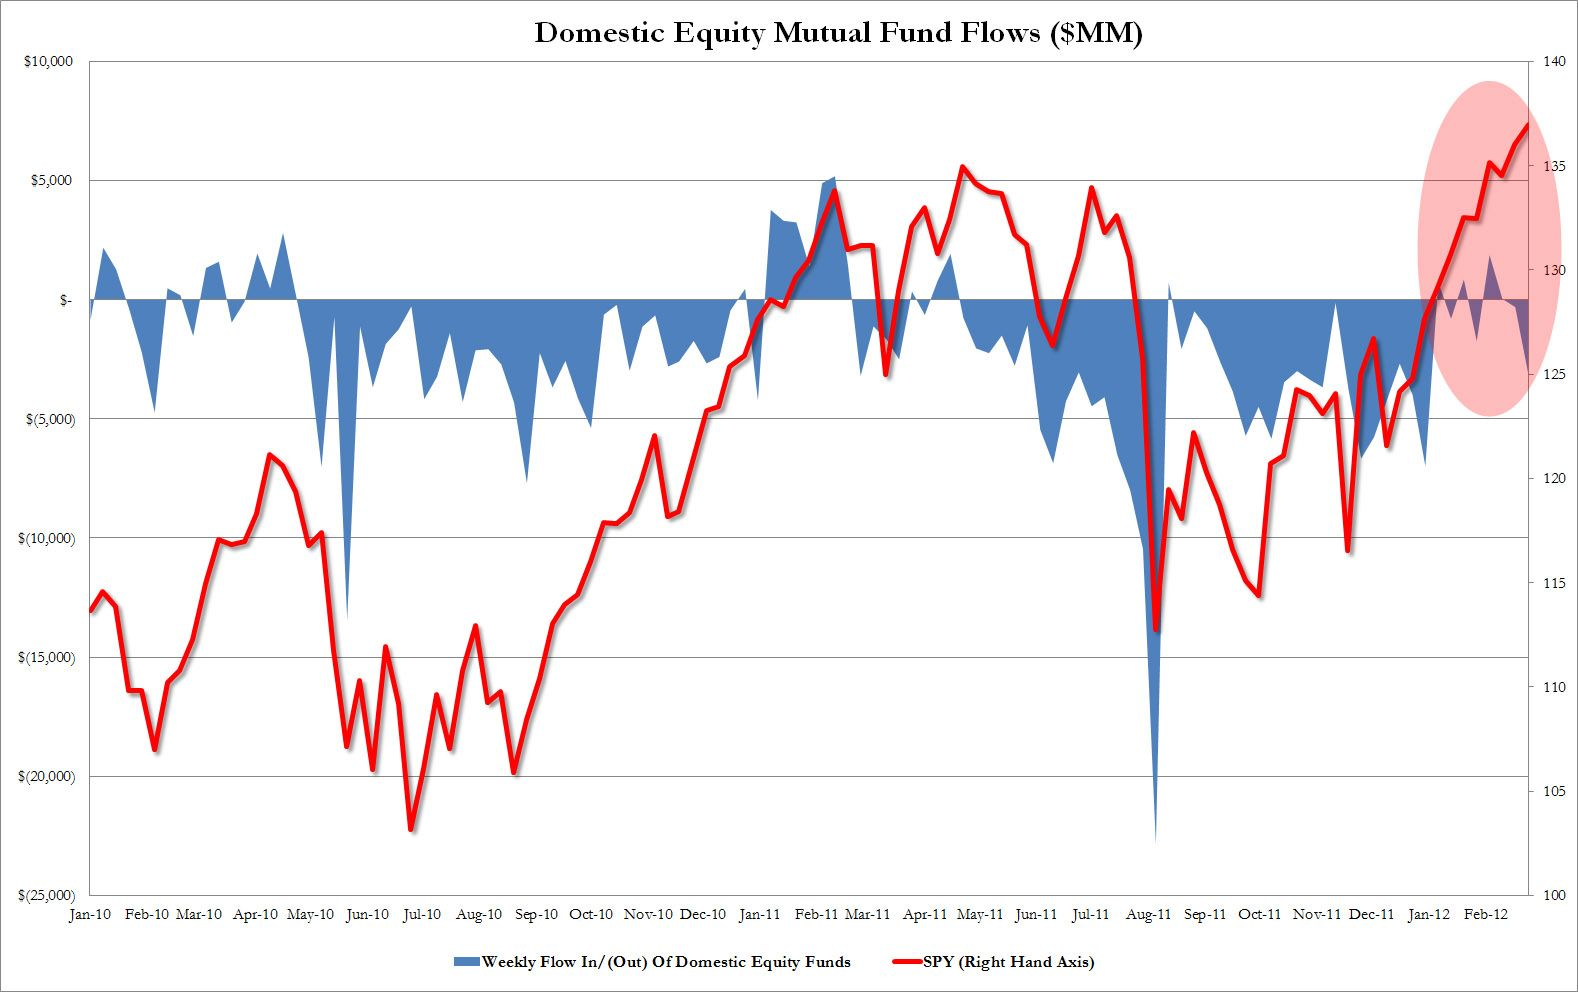 Domestic equity mutual fund flows jan 2010 to feb 2012 source domestic equity mutual fund flows jan 2010 to feb 2012 source zerohedge investor behavior pinterest nvjuhfo Choice Image